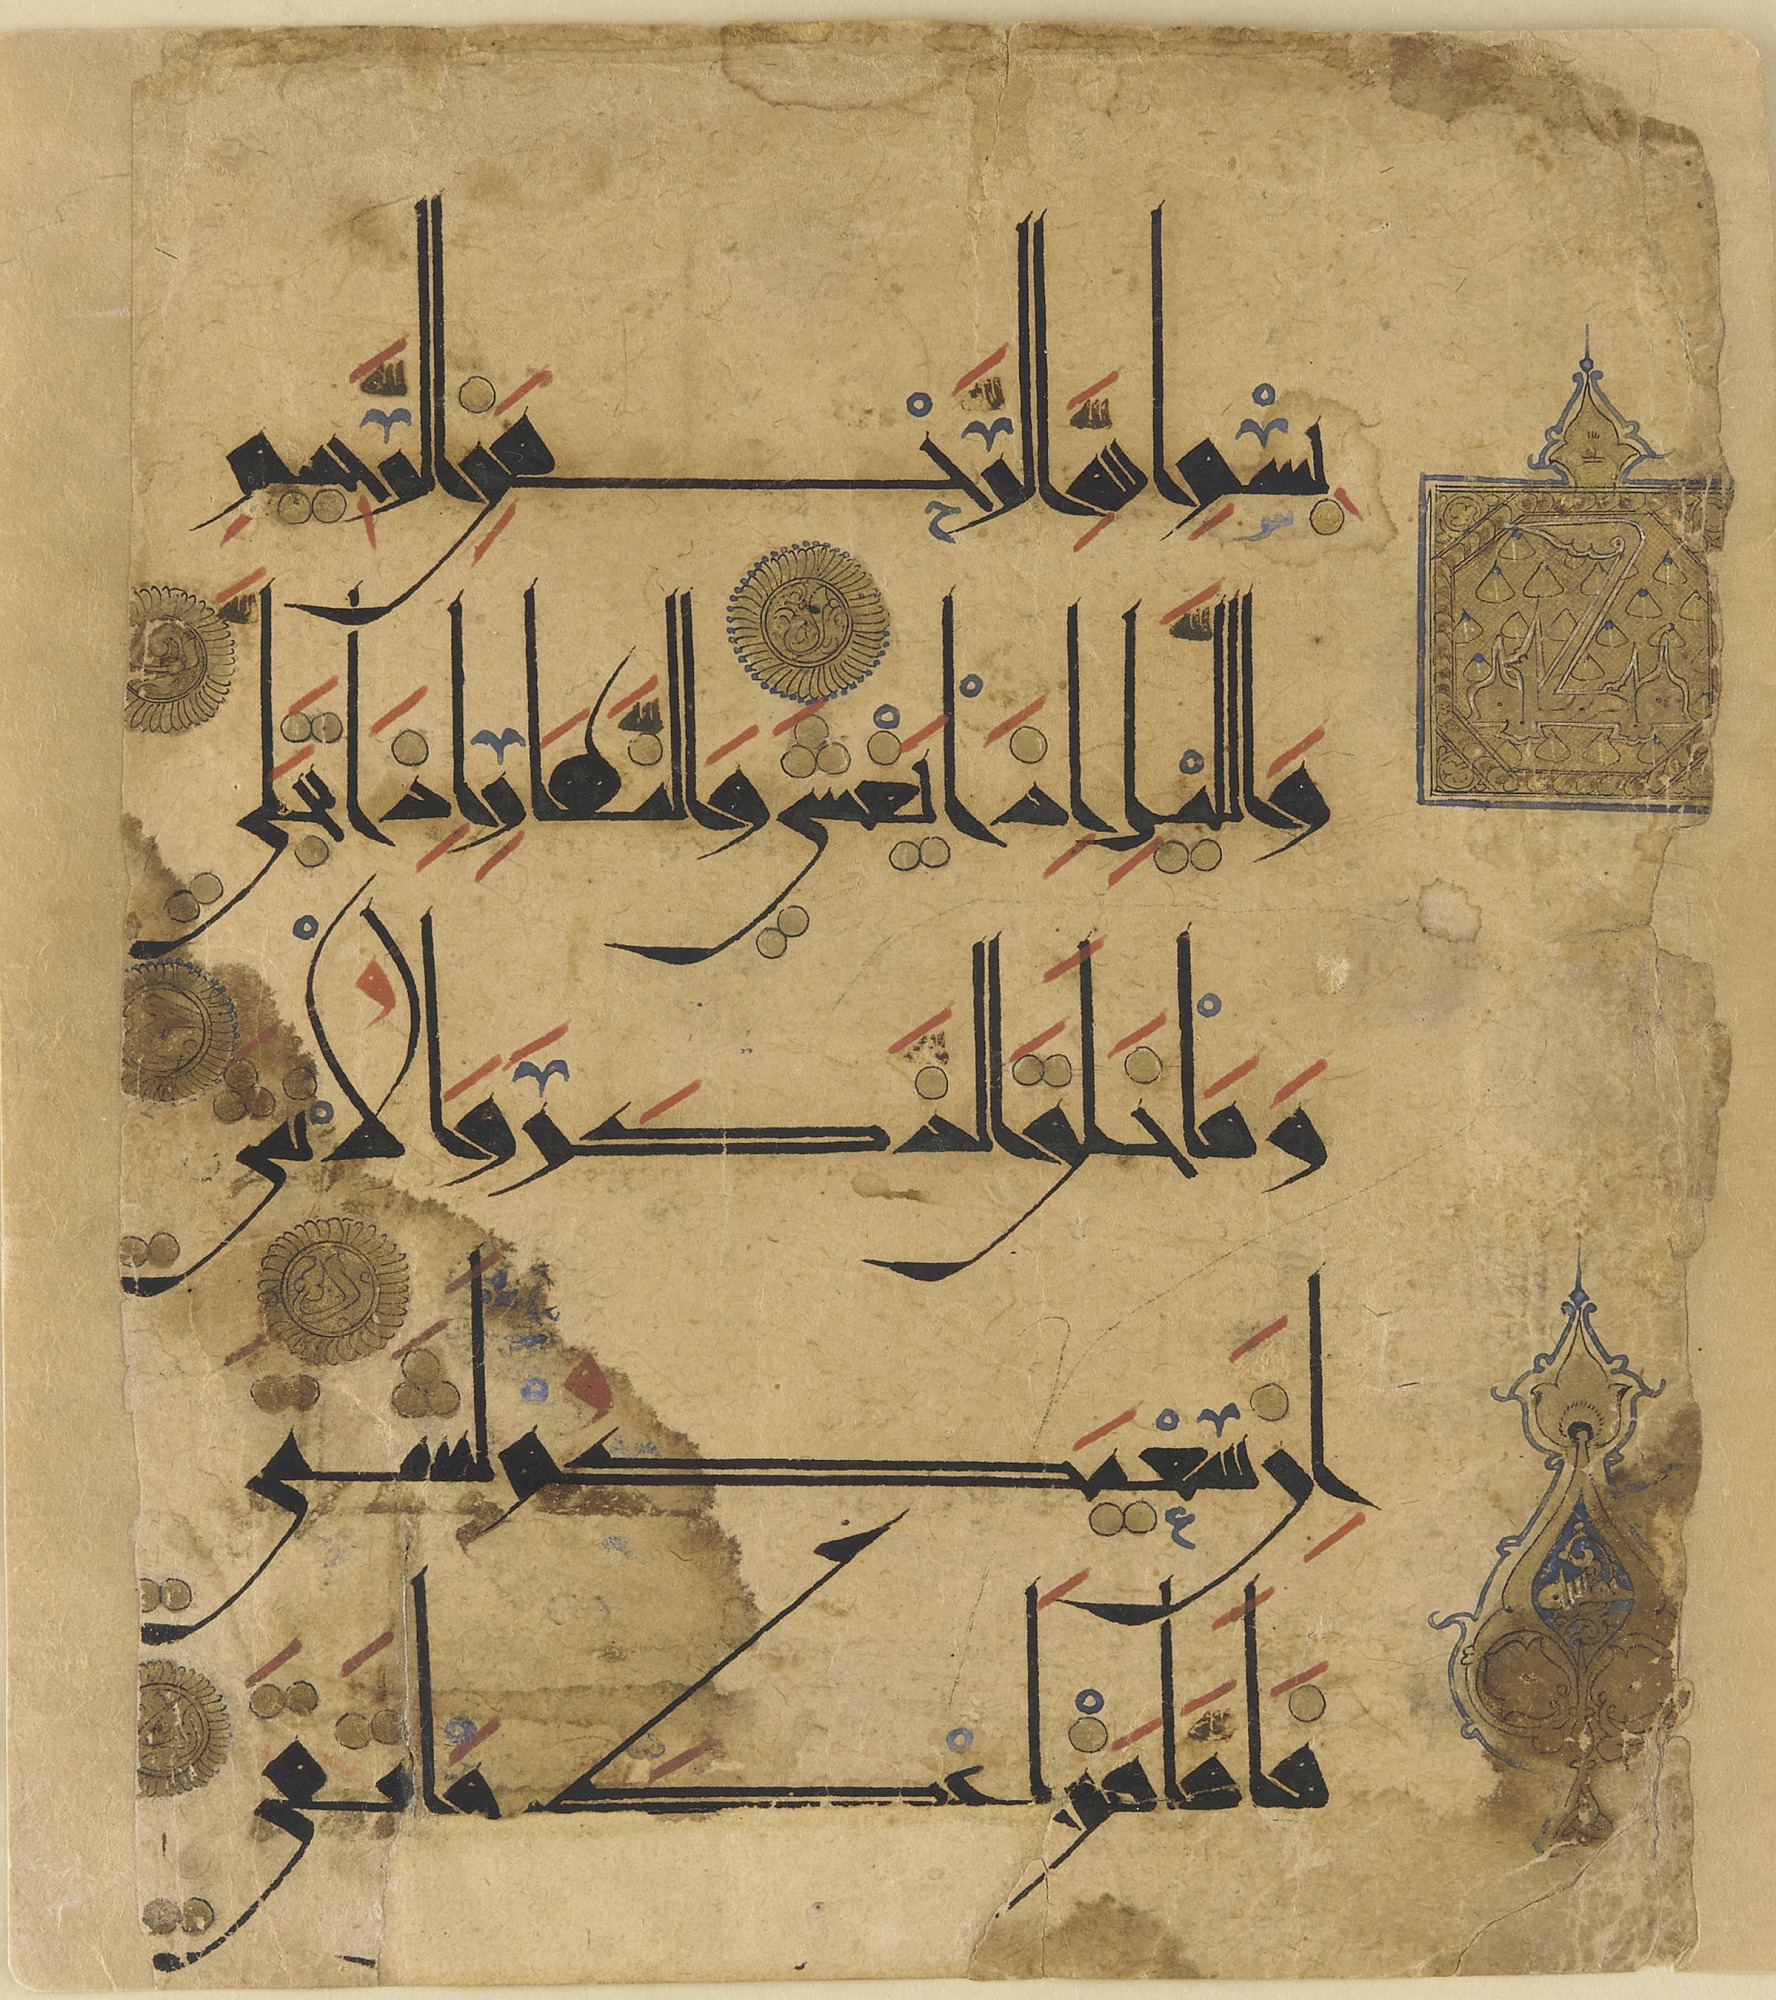 verso: Folio from a Qur'an, sura 91:14-15; sura 92:1-5